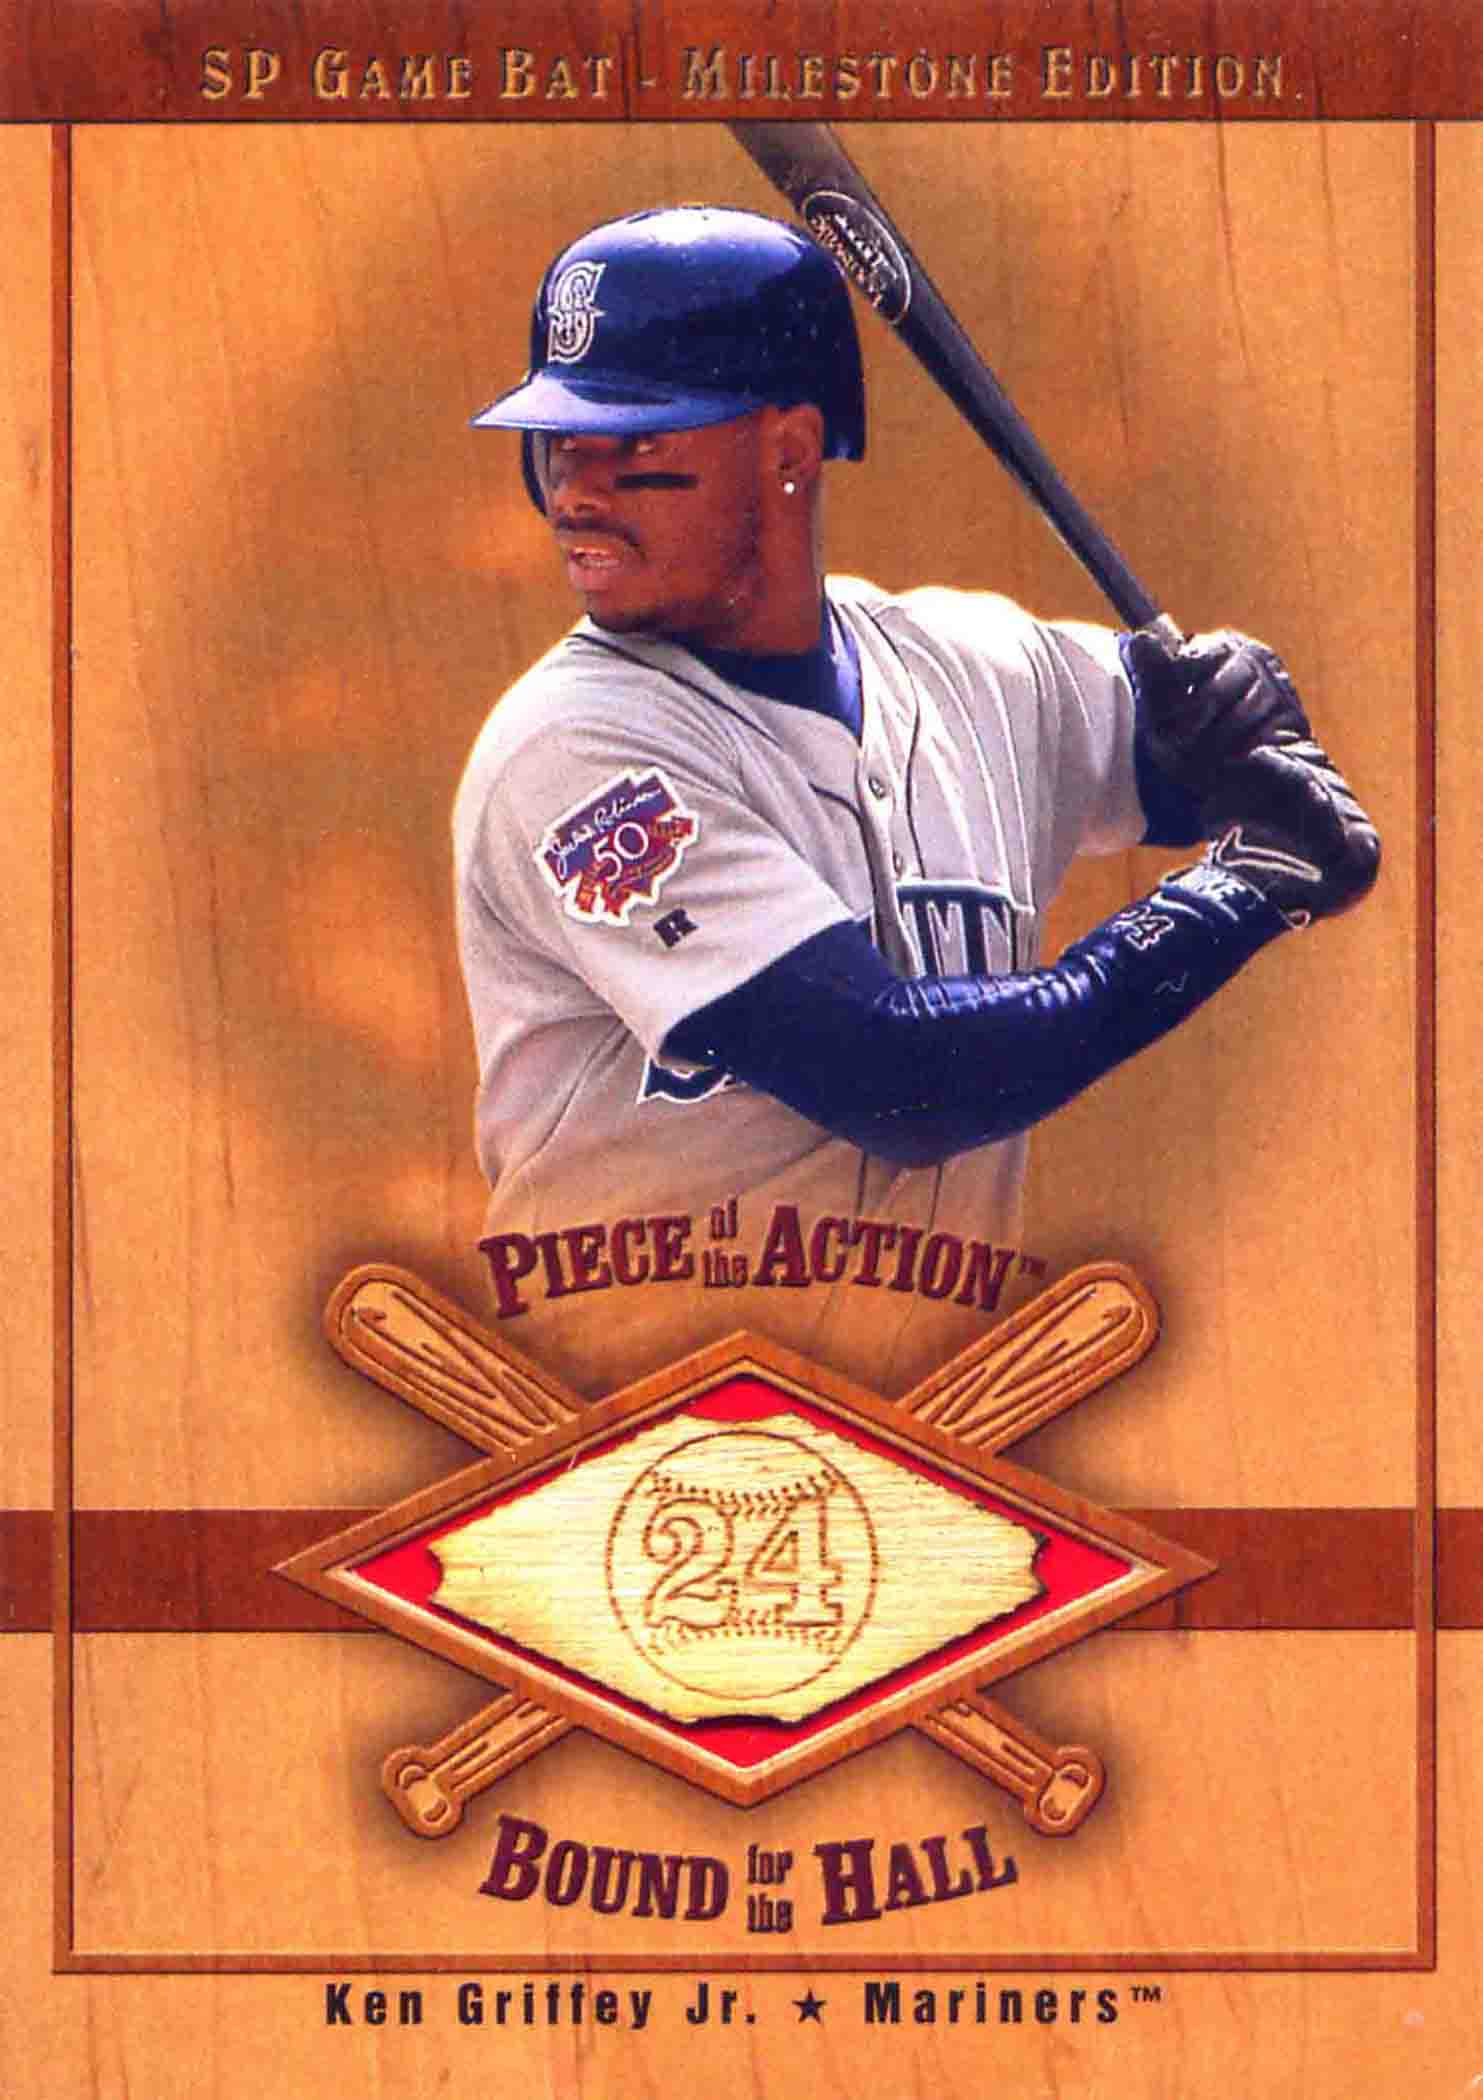 2001 SP Game Bat Milestone Piece of Action Bound for the Hall